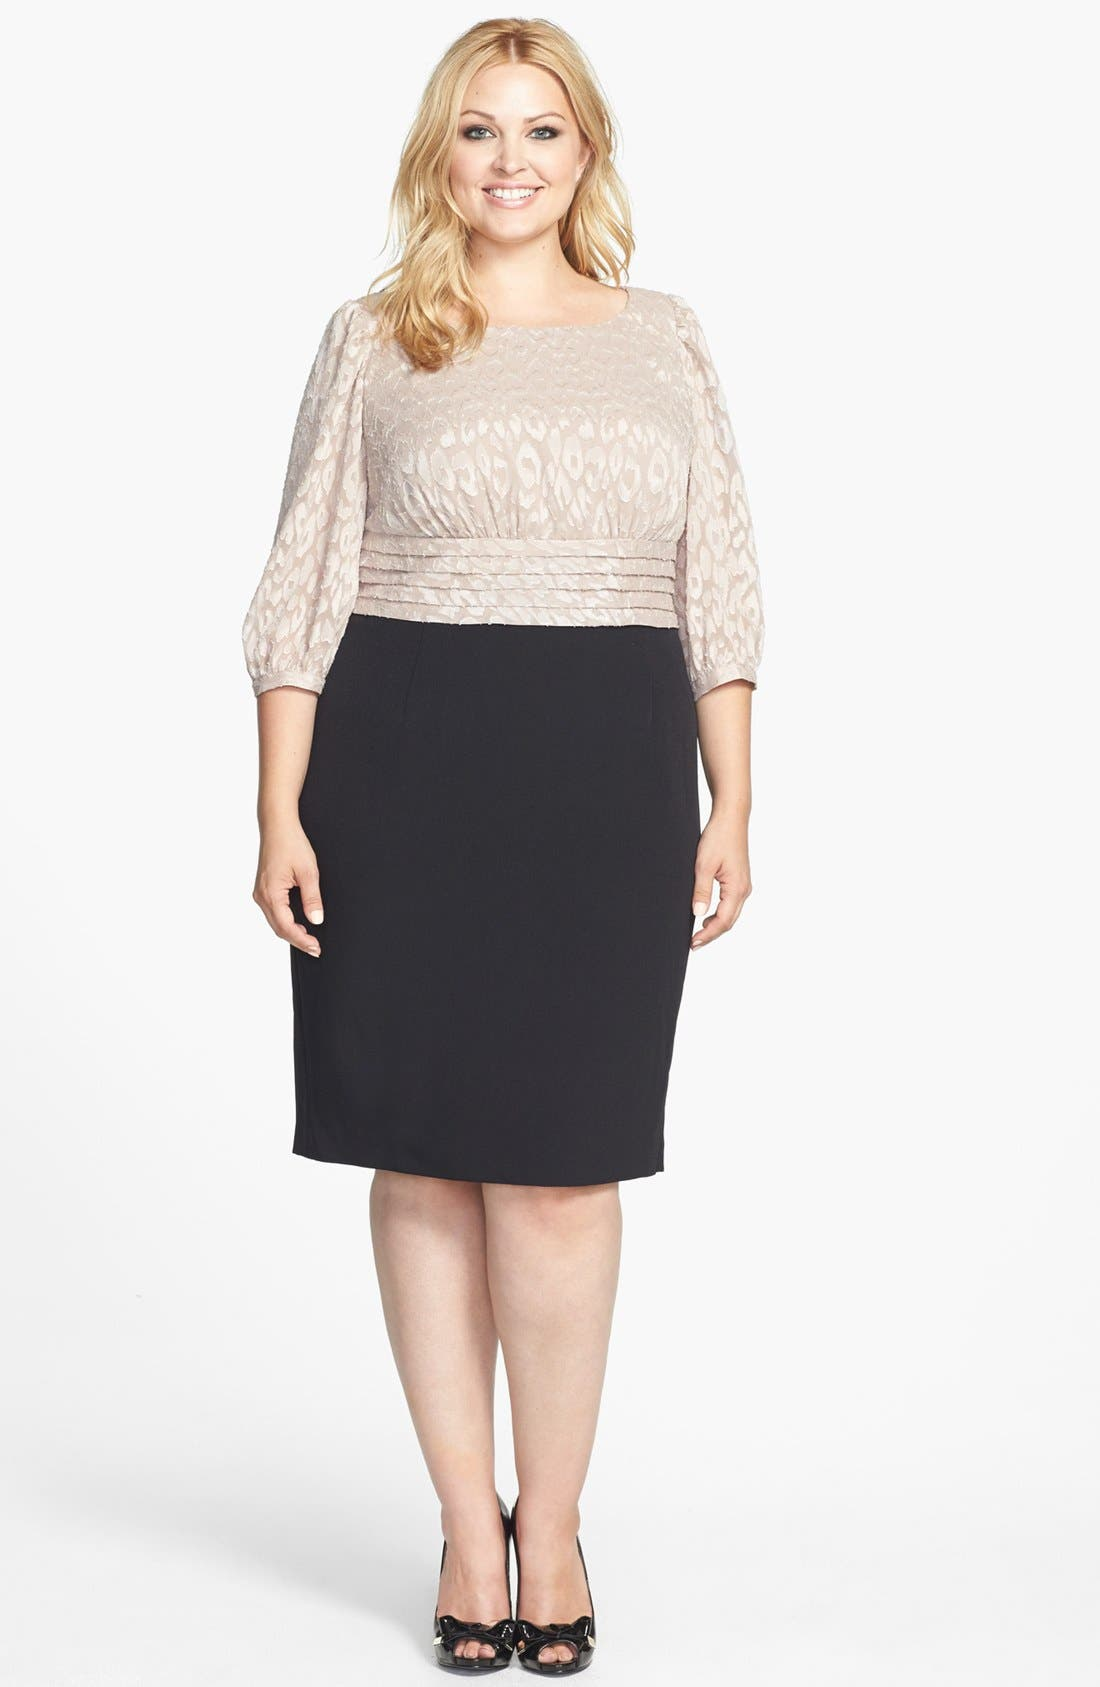 Alternate Image 1 Selected - Adrianna Papell Mixed Media Sheath Dress (Plus Size)